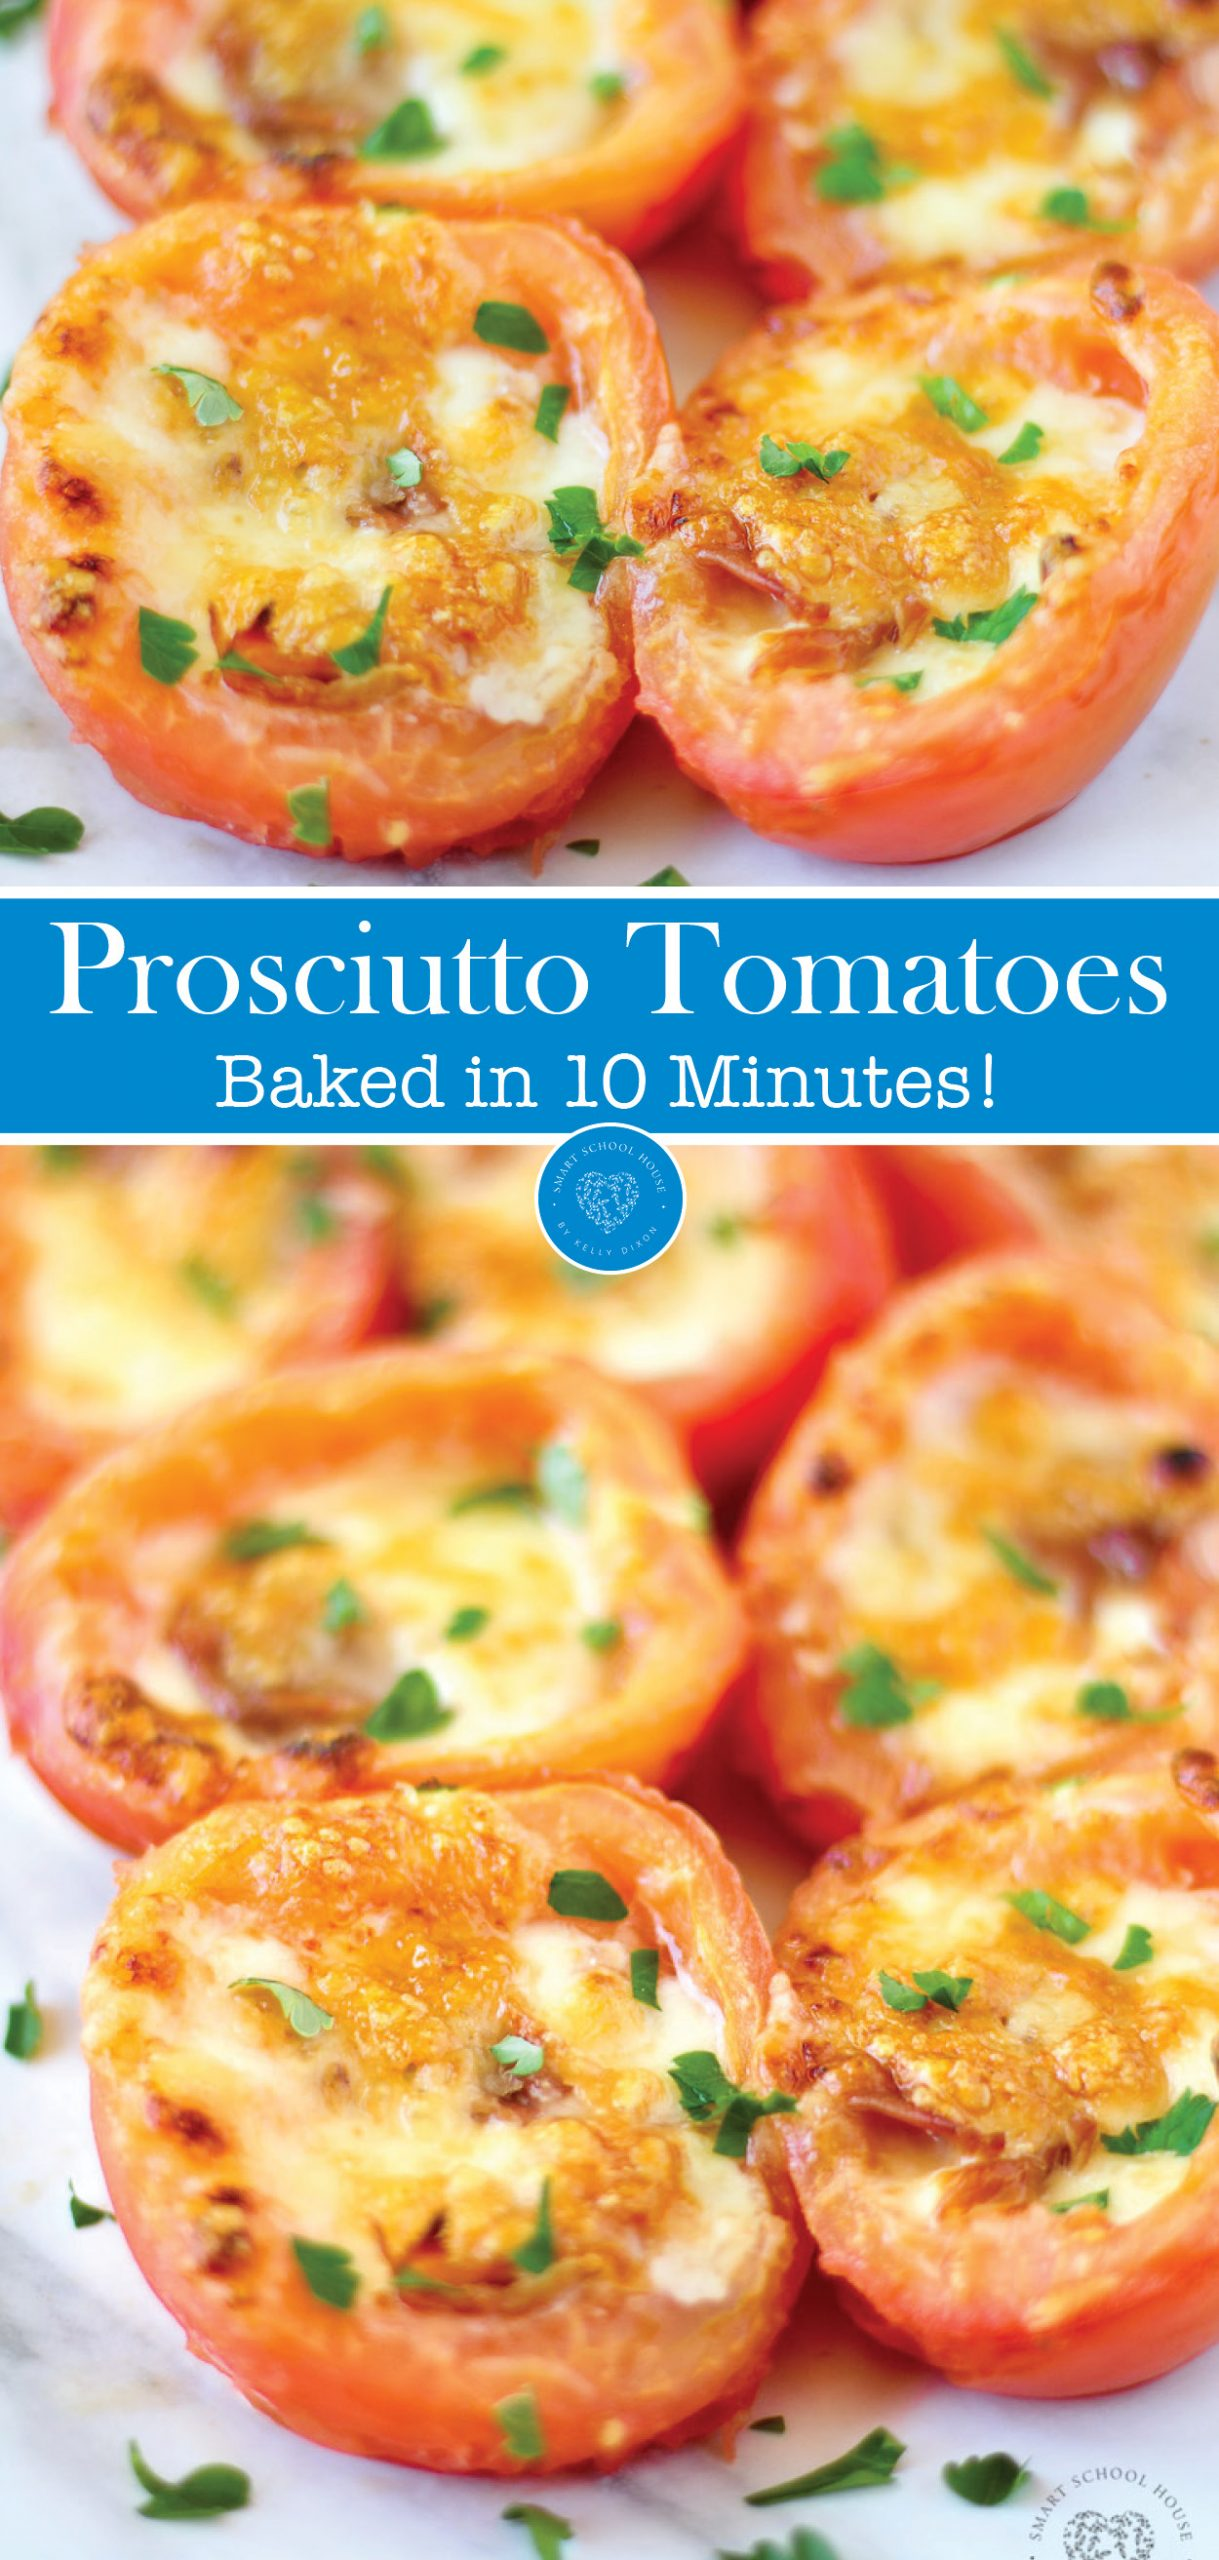 Roma Baked Tomatoes with mozzarella and Parmesan cheese. Topped with prosciutto and broiled to perfection in ten minutes or less.